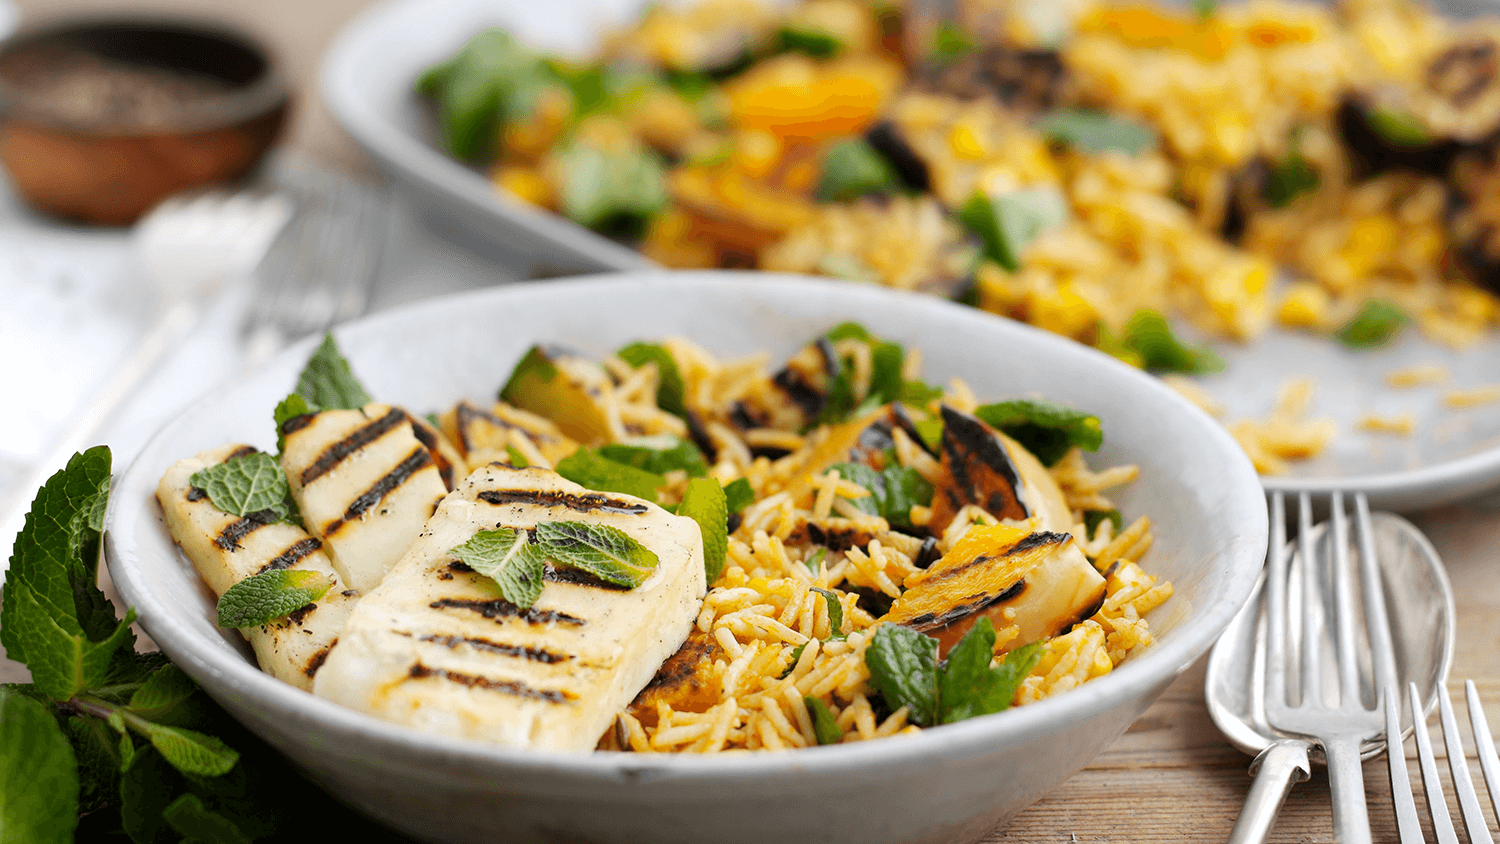 Halloumi & Vegetable Salad